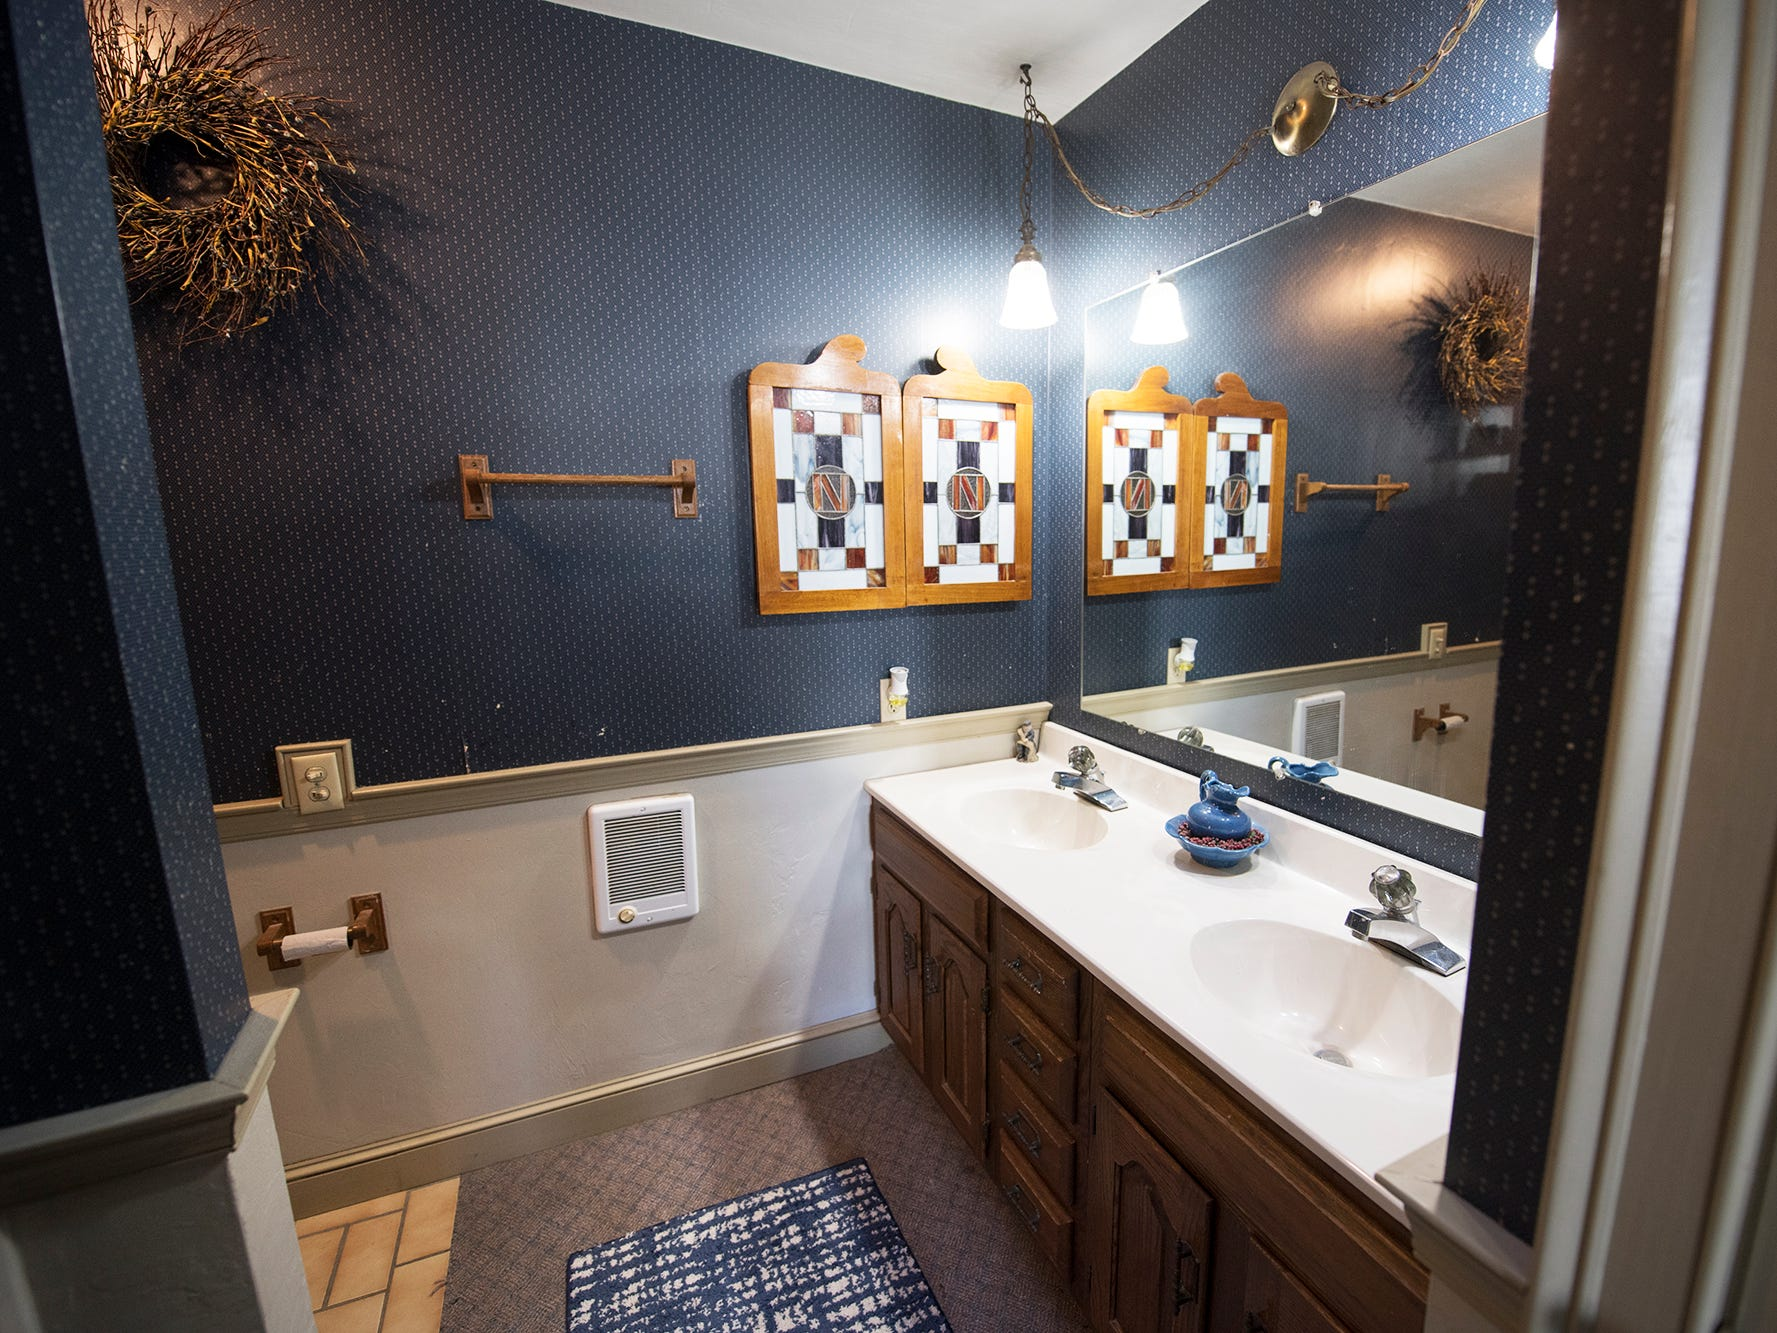 A bathroom in the main house at Gray Goose Manor in Springfield Township. The main house has two bathrooms.